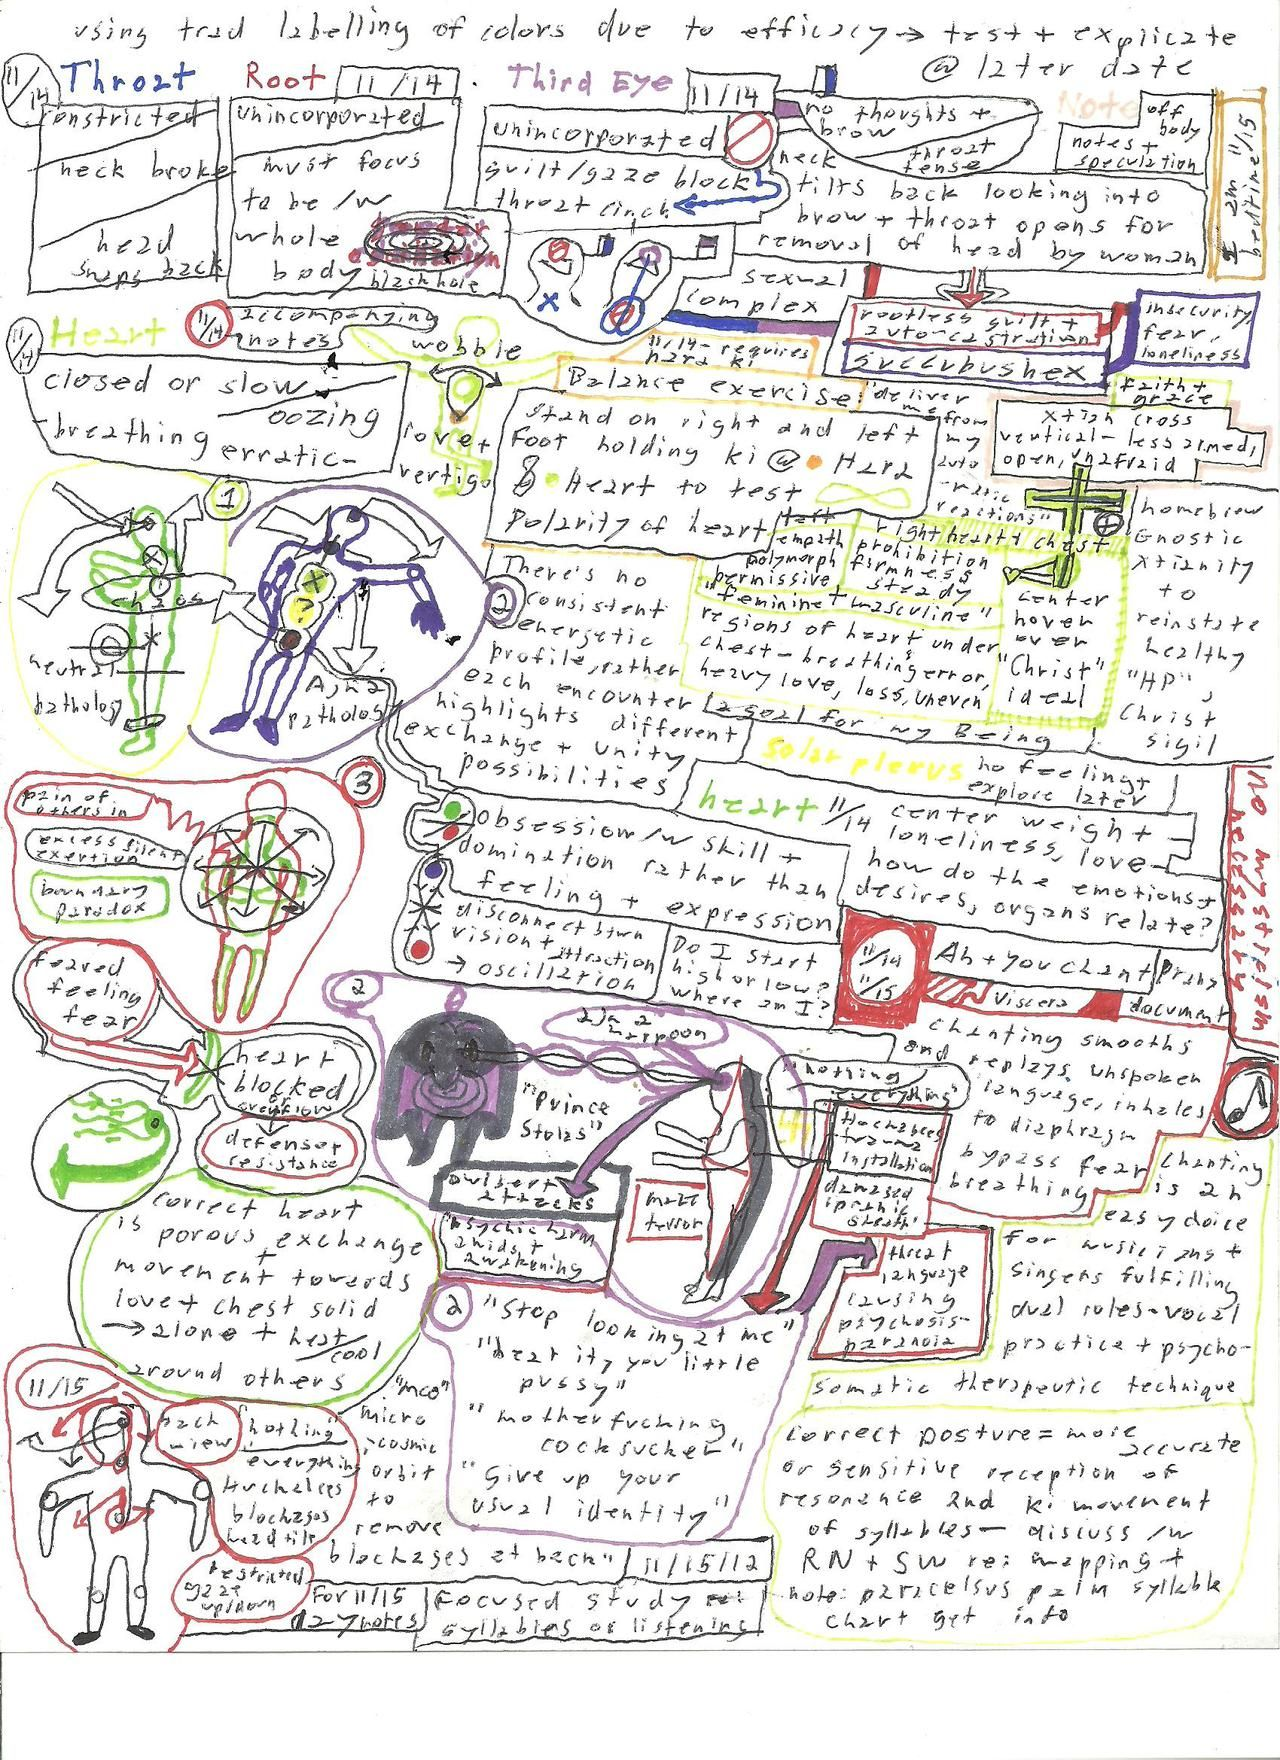 schizophrenia and psychosis essay Nutrition solutions  schizophrenia and psychosis  about schizophrenia and   'omegas' and 'schizophrenia' into the search field for a summary of studies that.